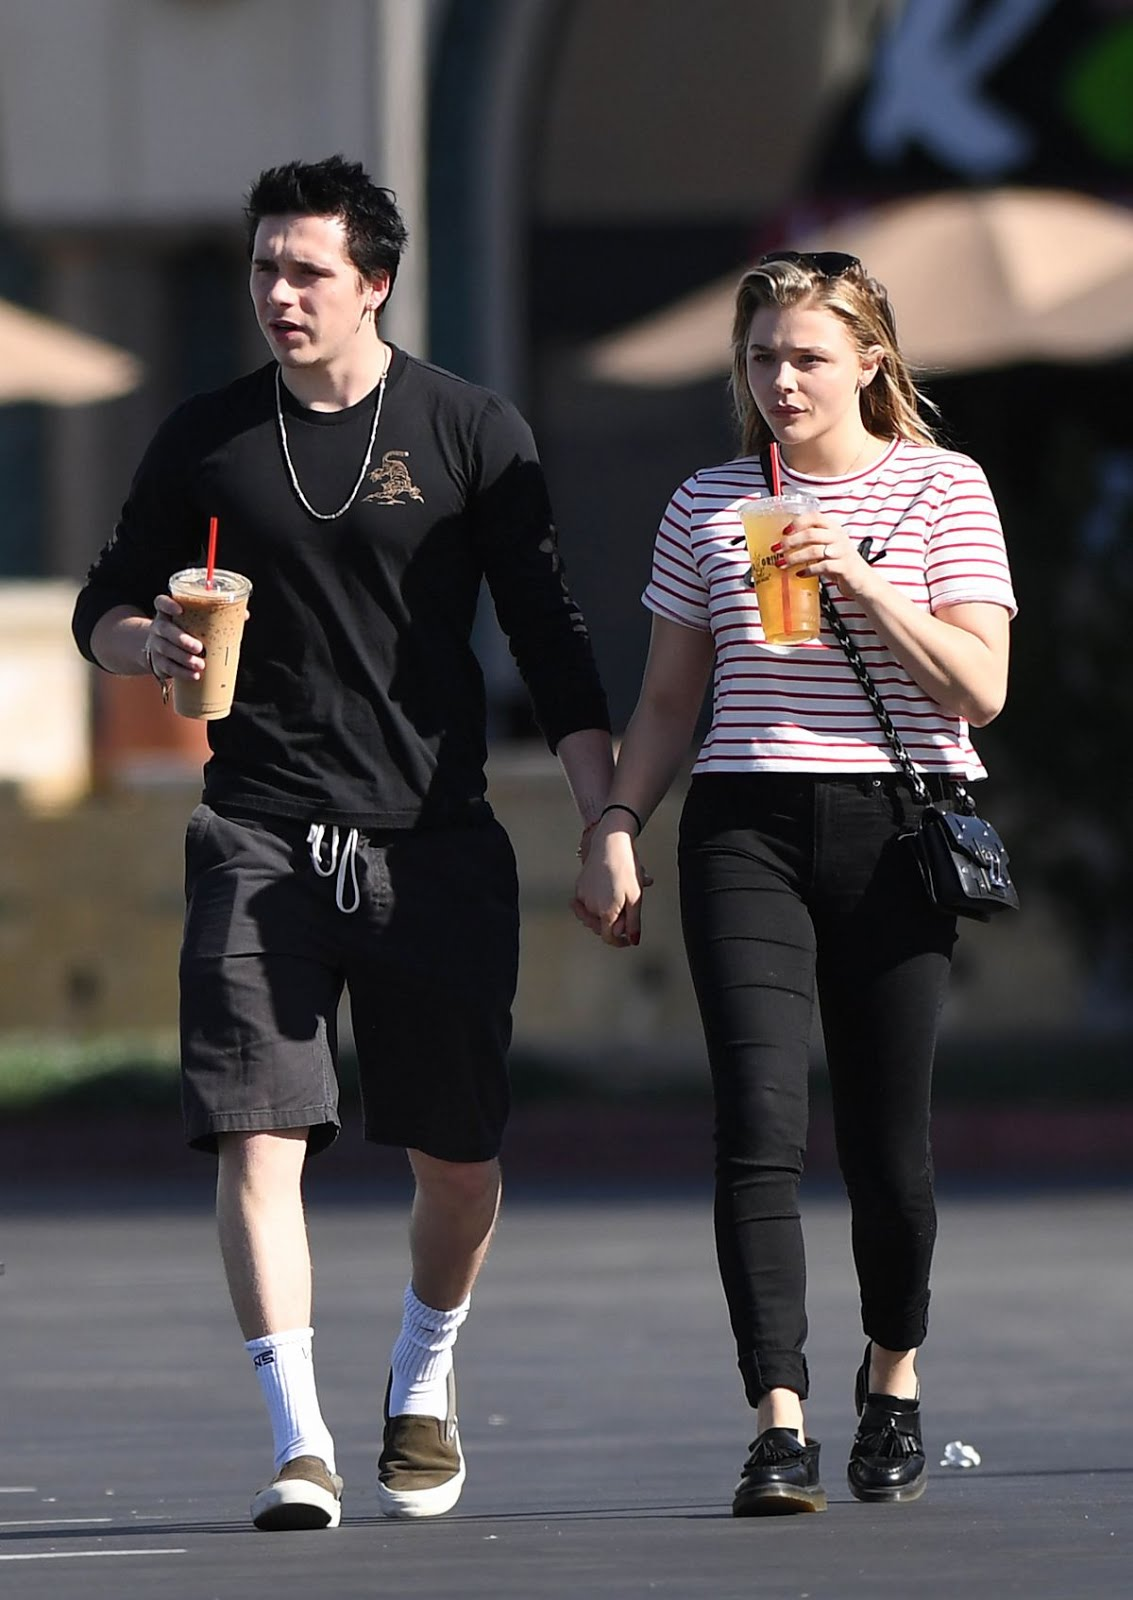 Photos of Chloe Grace Moretz and Brooklyn Beckham Out in Los Angeles